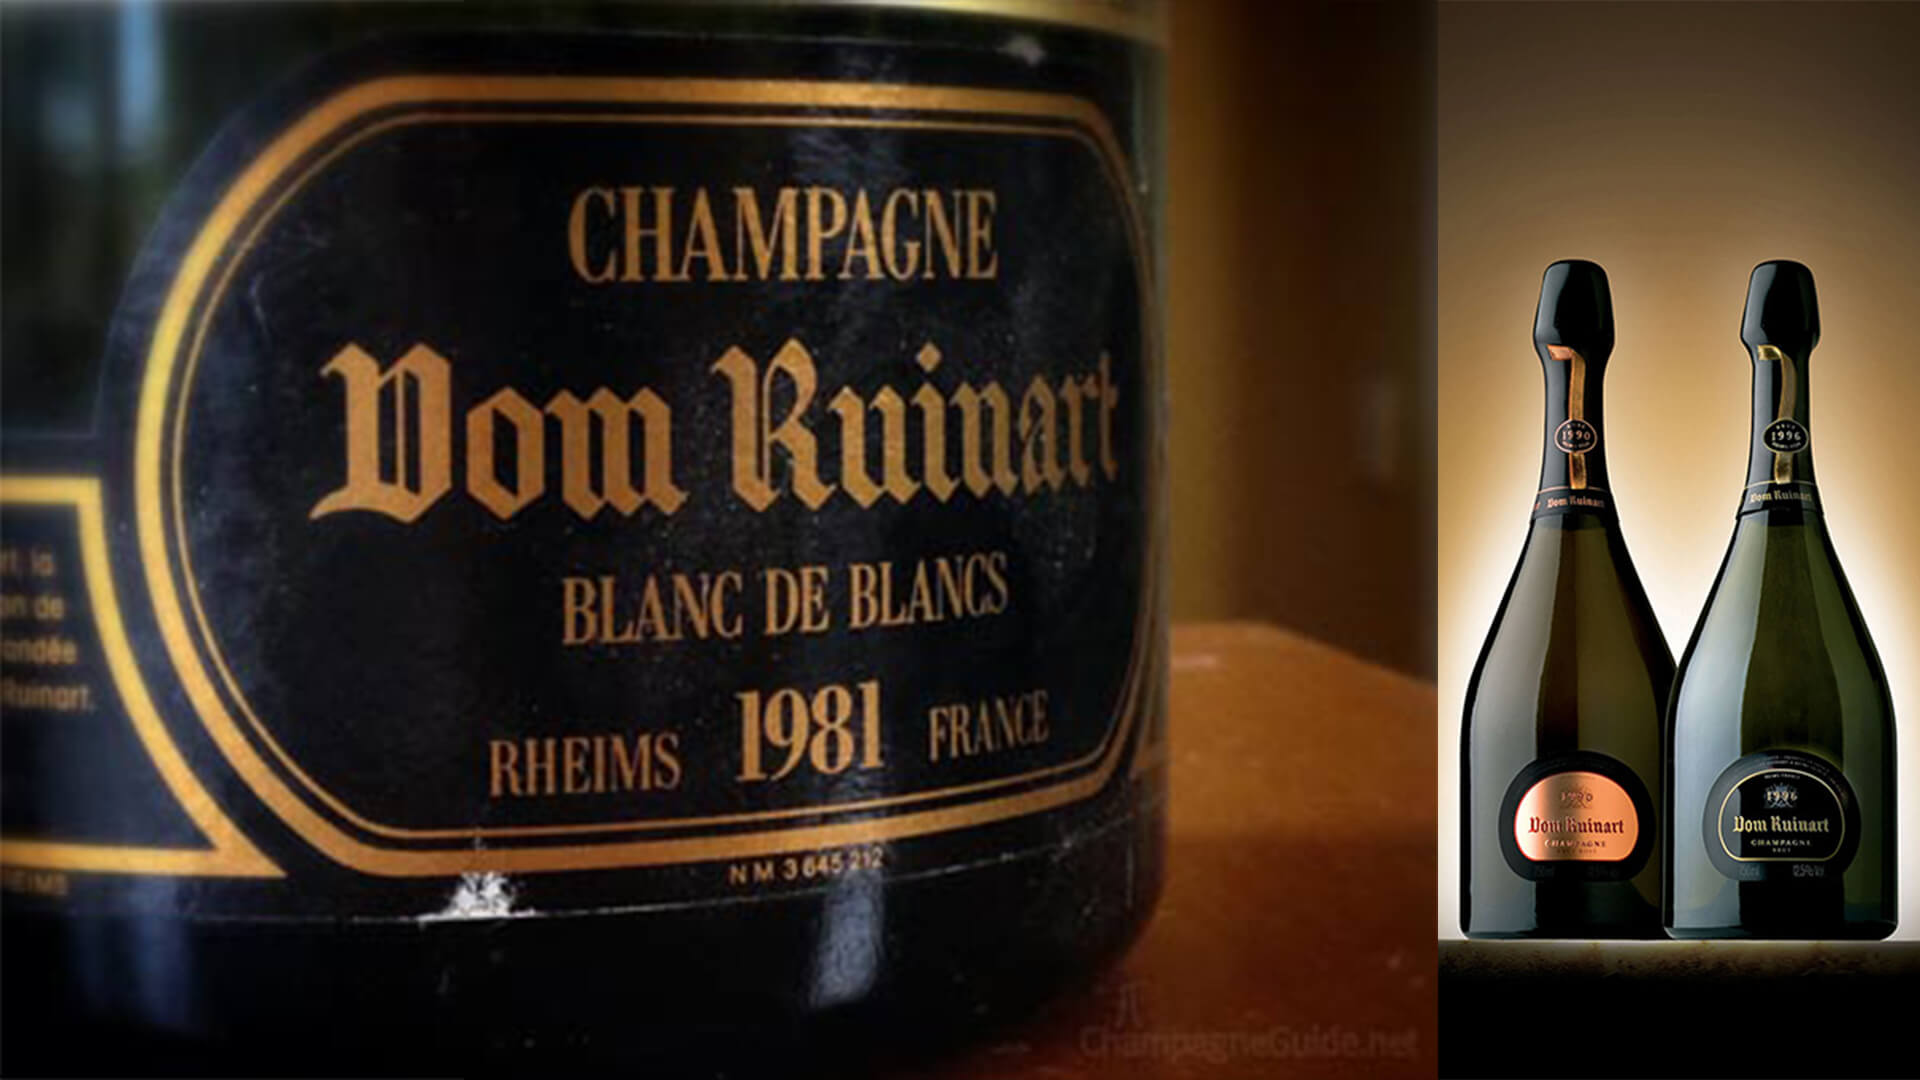 The Ultimate Ruinart Champagne Dinner